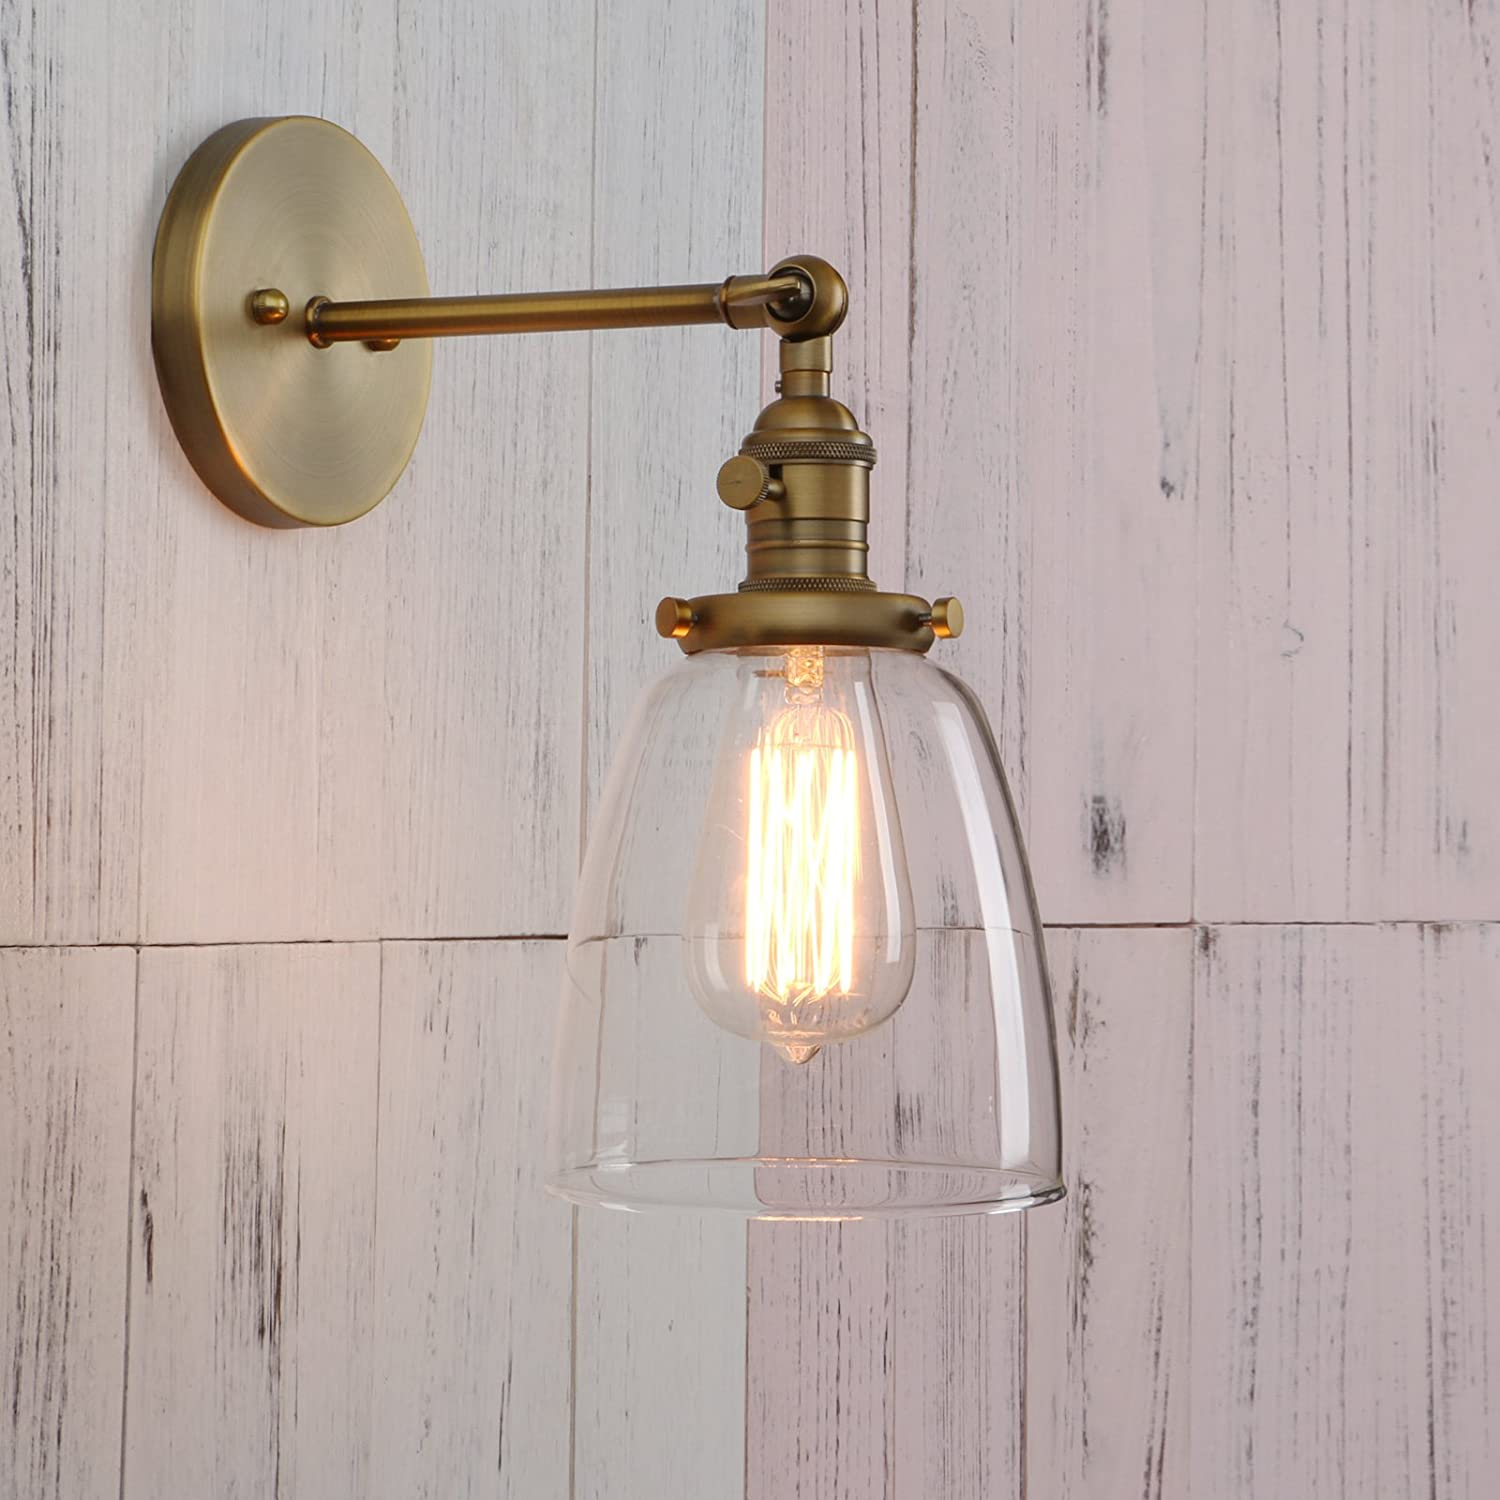 products ellerbe fcfc sconce lighting schoolhouse